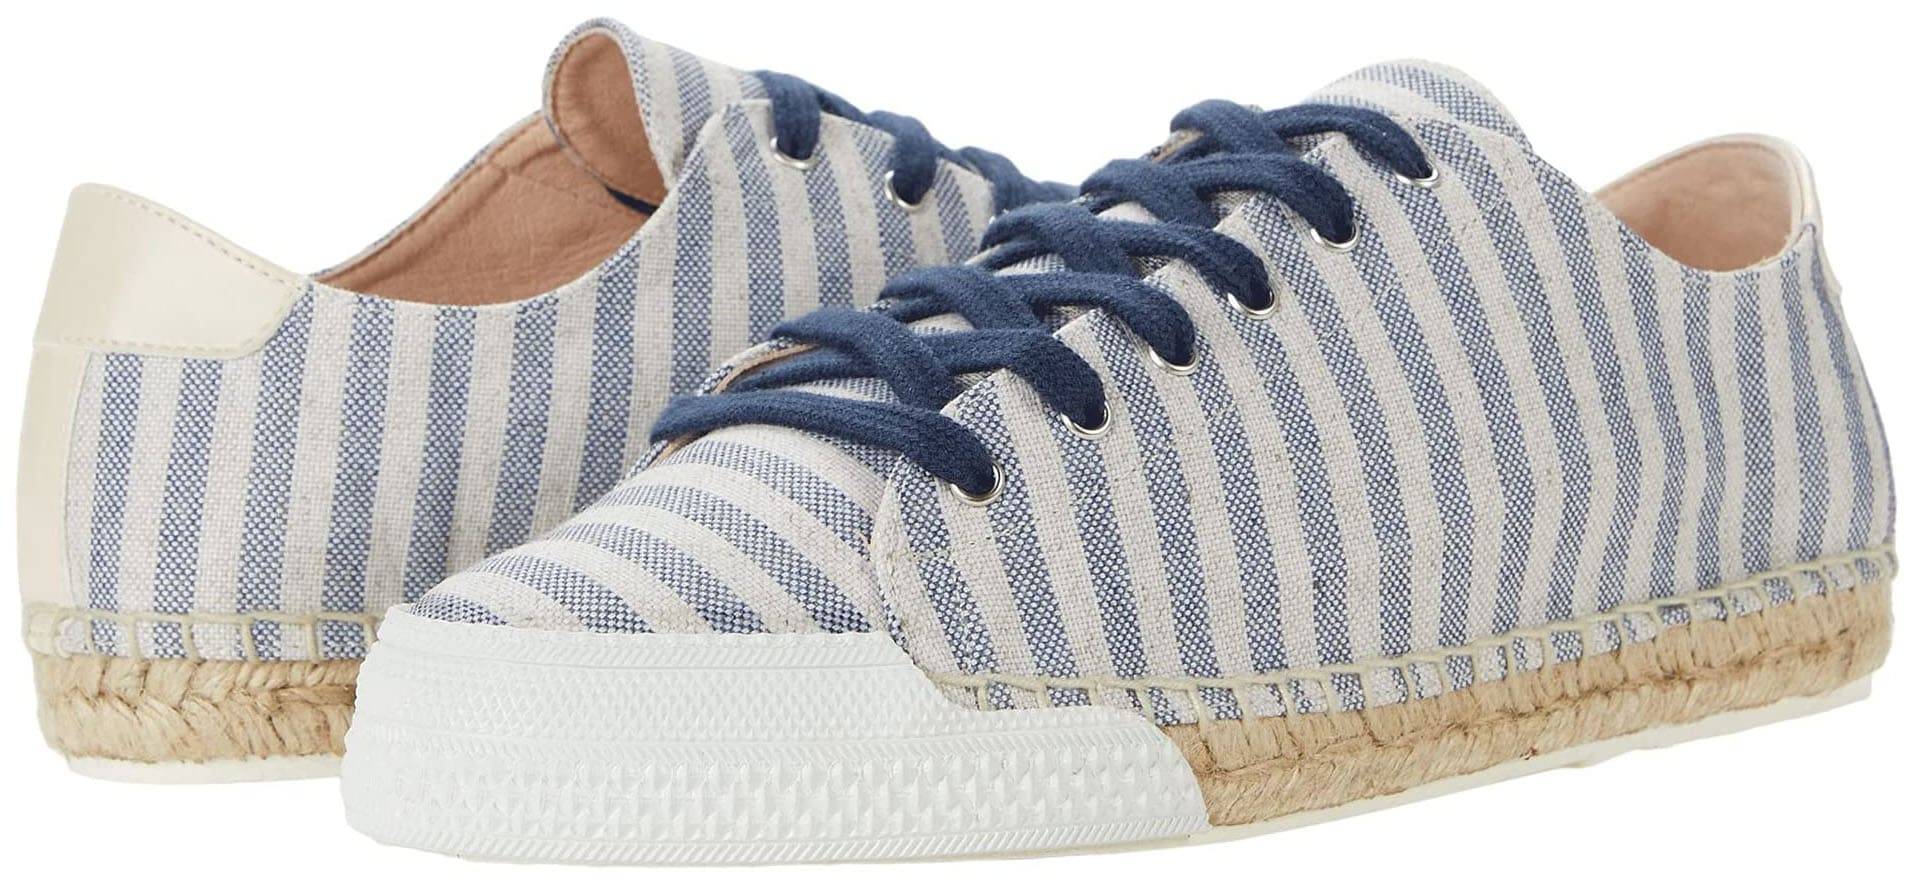 A pair of handcrafted, hand-dyed sneakers with reinforced toe bumpers and jute-wrapped soles